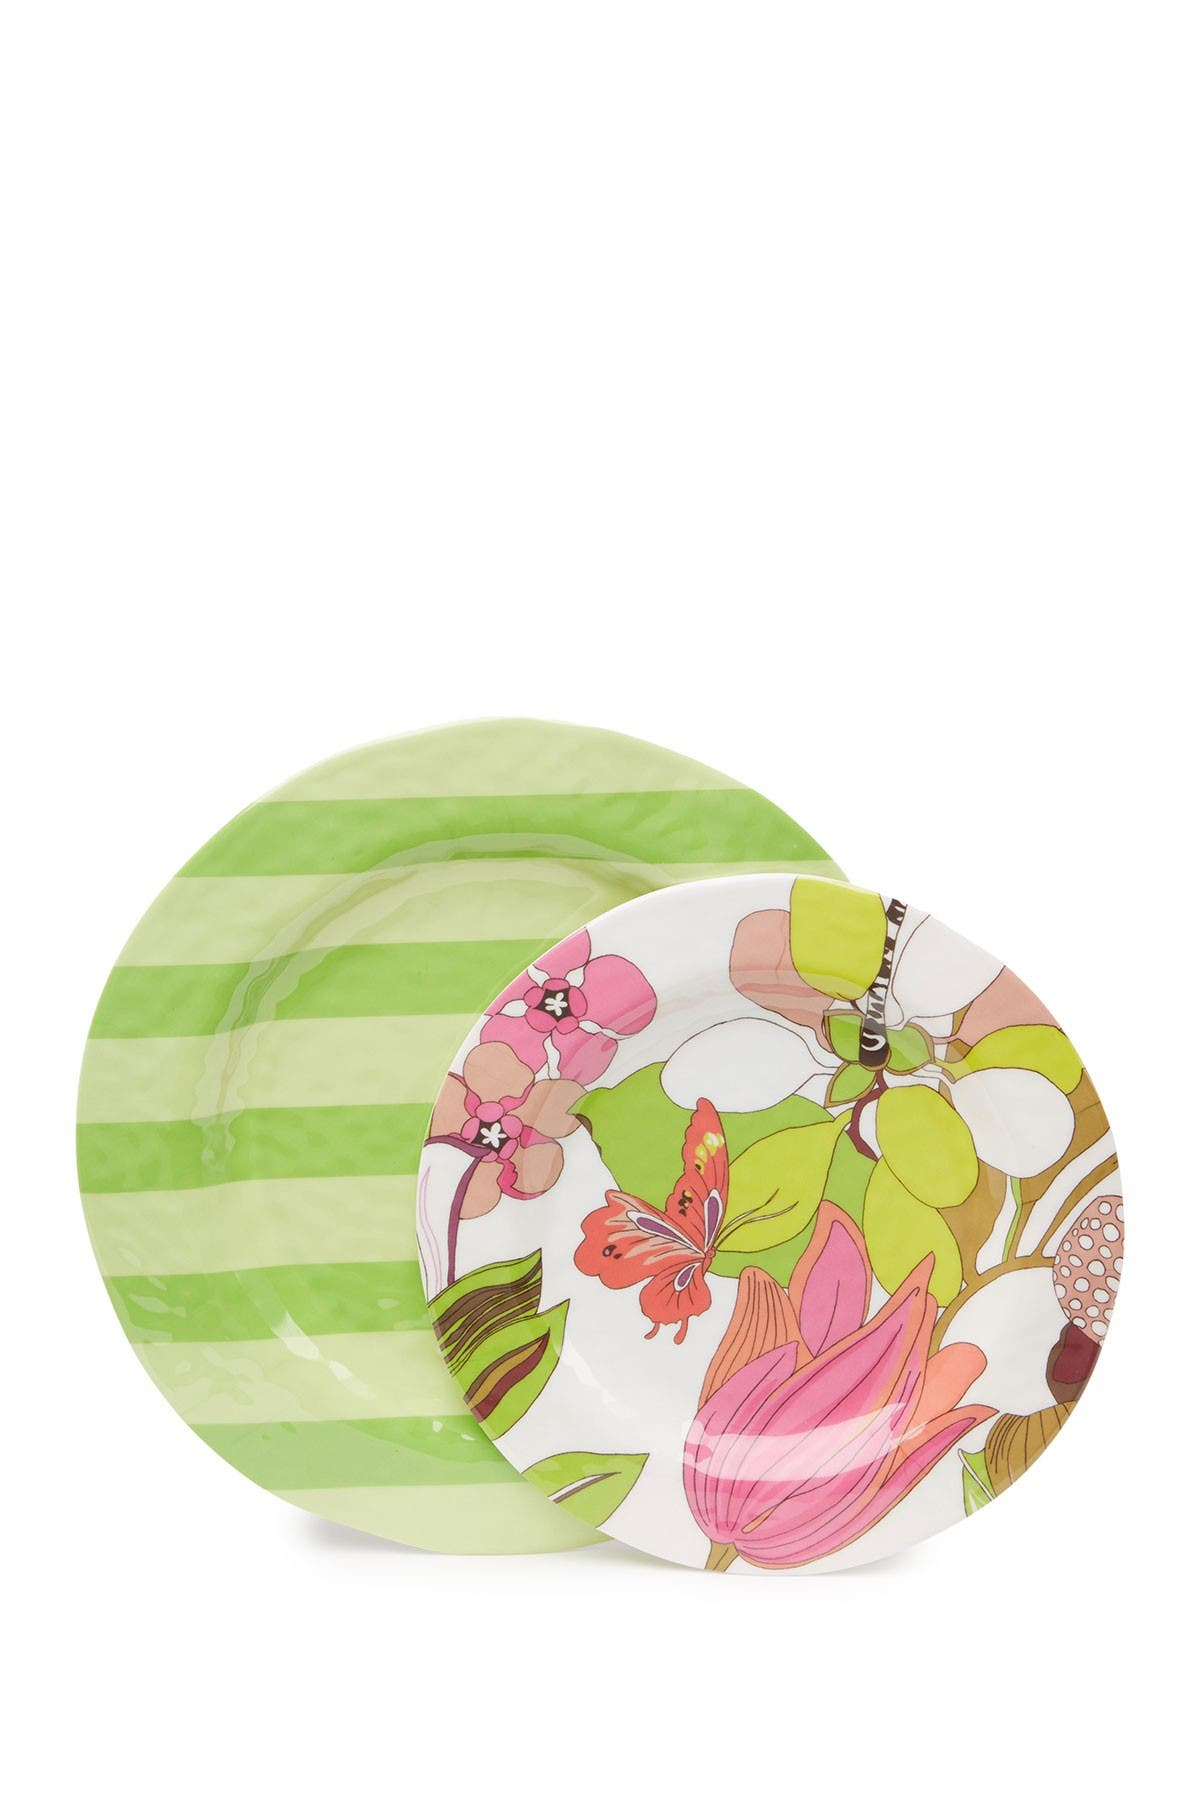 Image of Trina Turk Floral & Green Stripes Dinner Plates 2-Piece Set